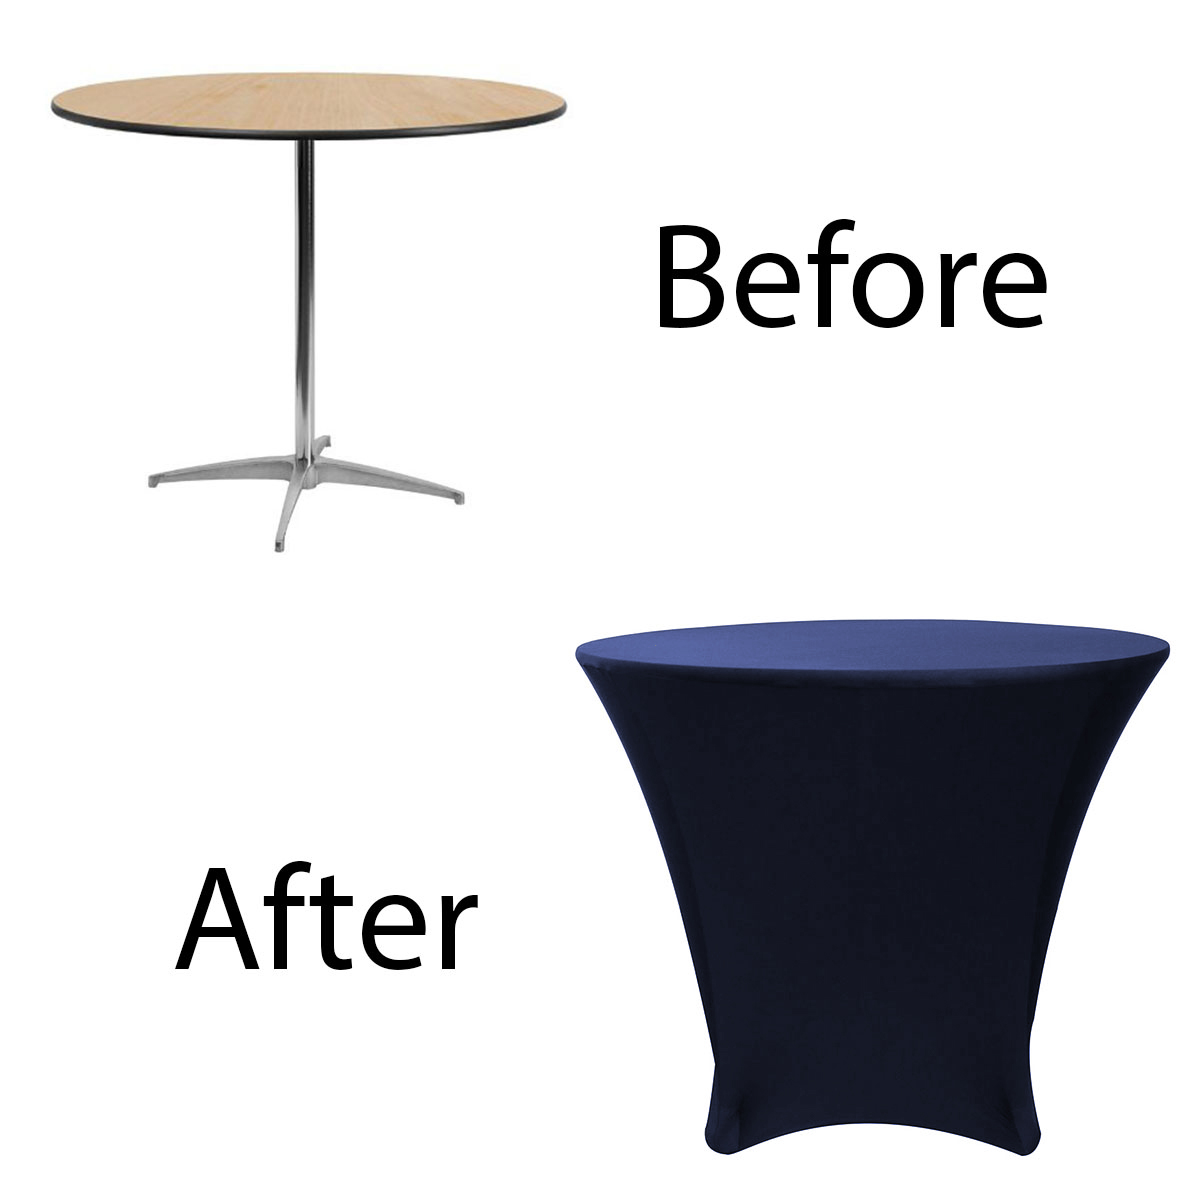 36-30-inch-lowboy-cocktail-spandex-table-covers-navy-before-after.jpg